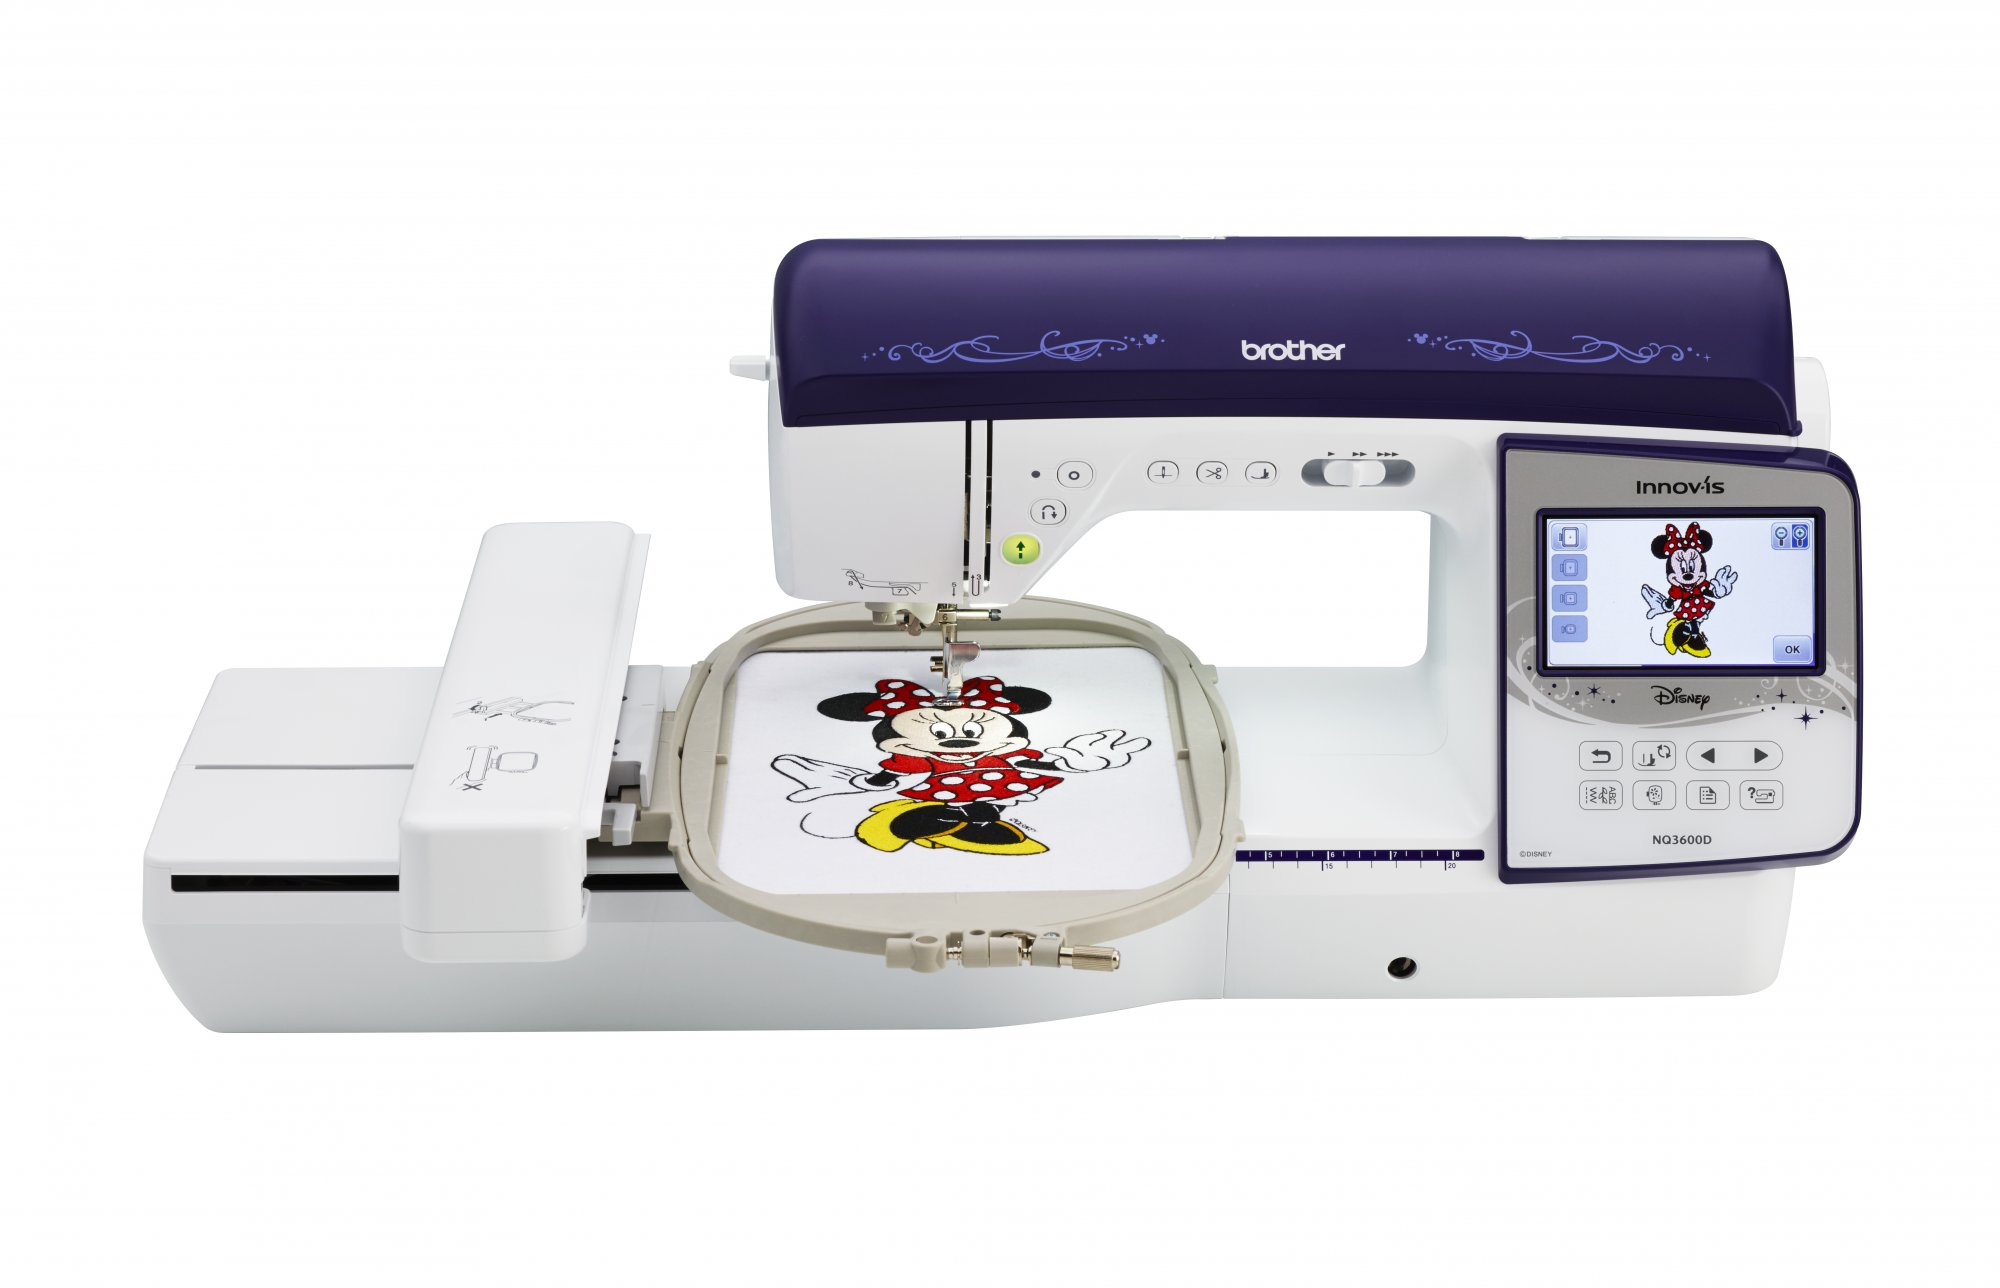 Brother NQ3600D Combo Sewing and Embroidery